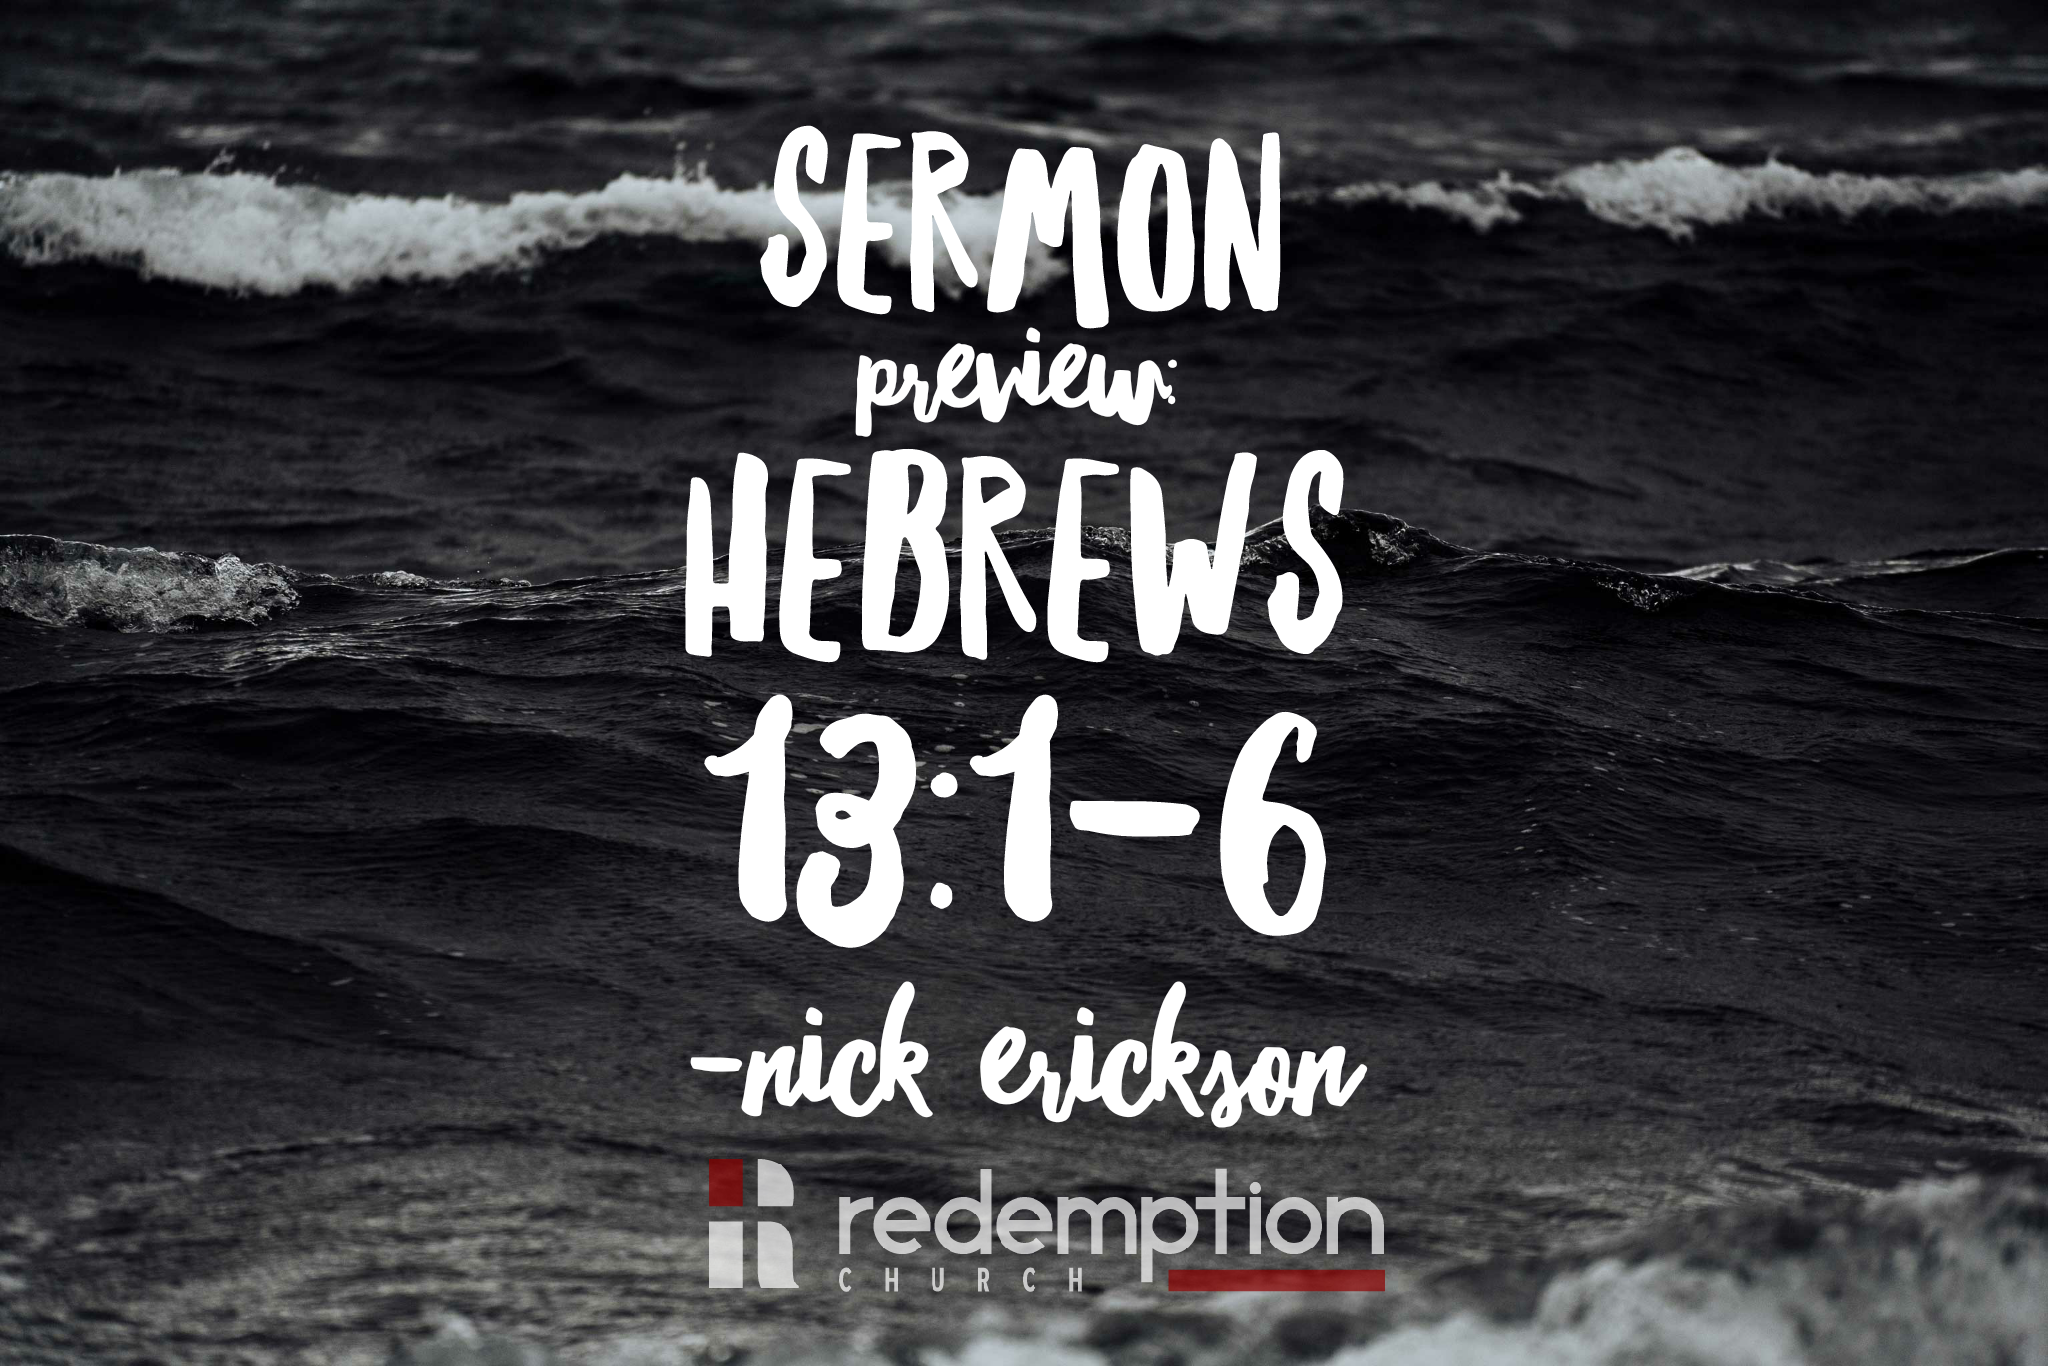 Sermon Preview: Hebrews 13:1-6